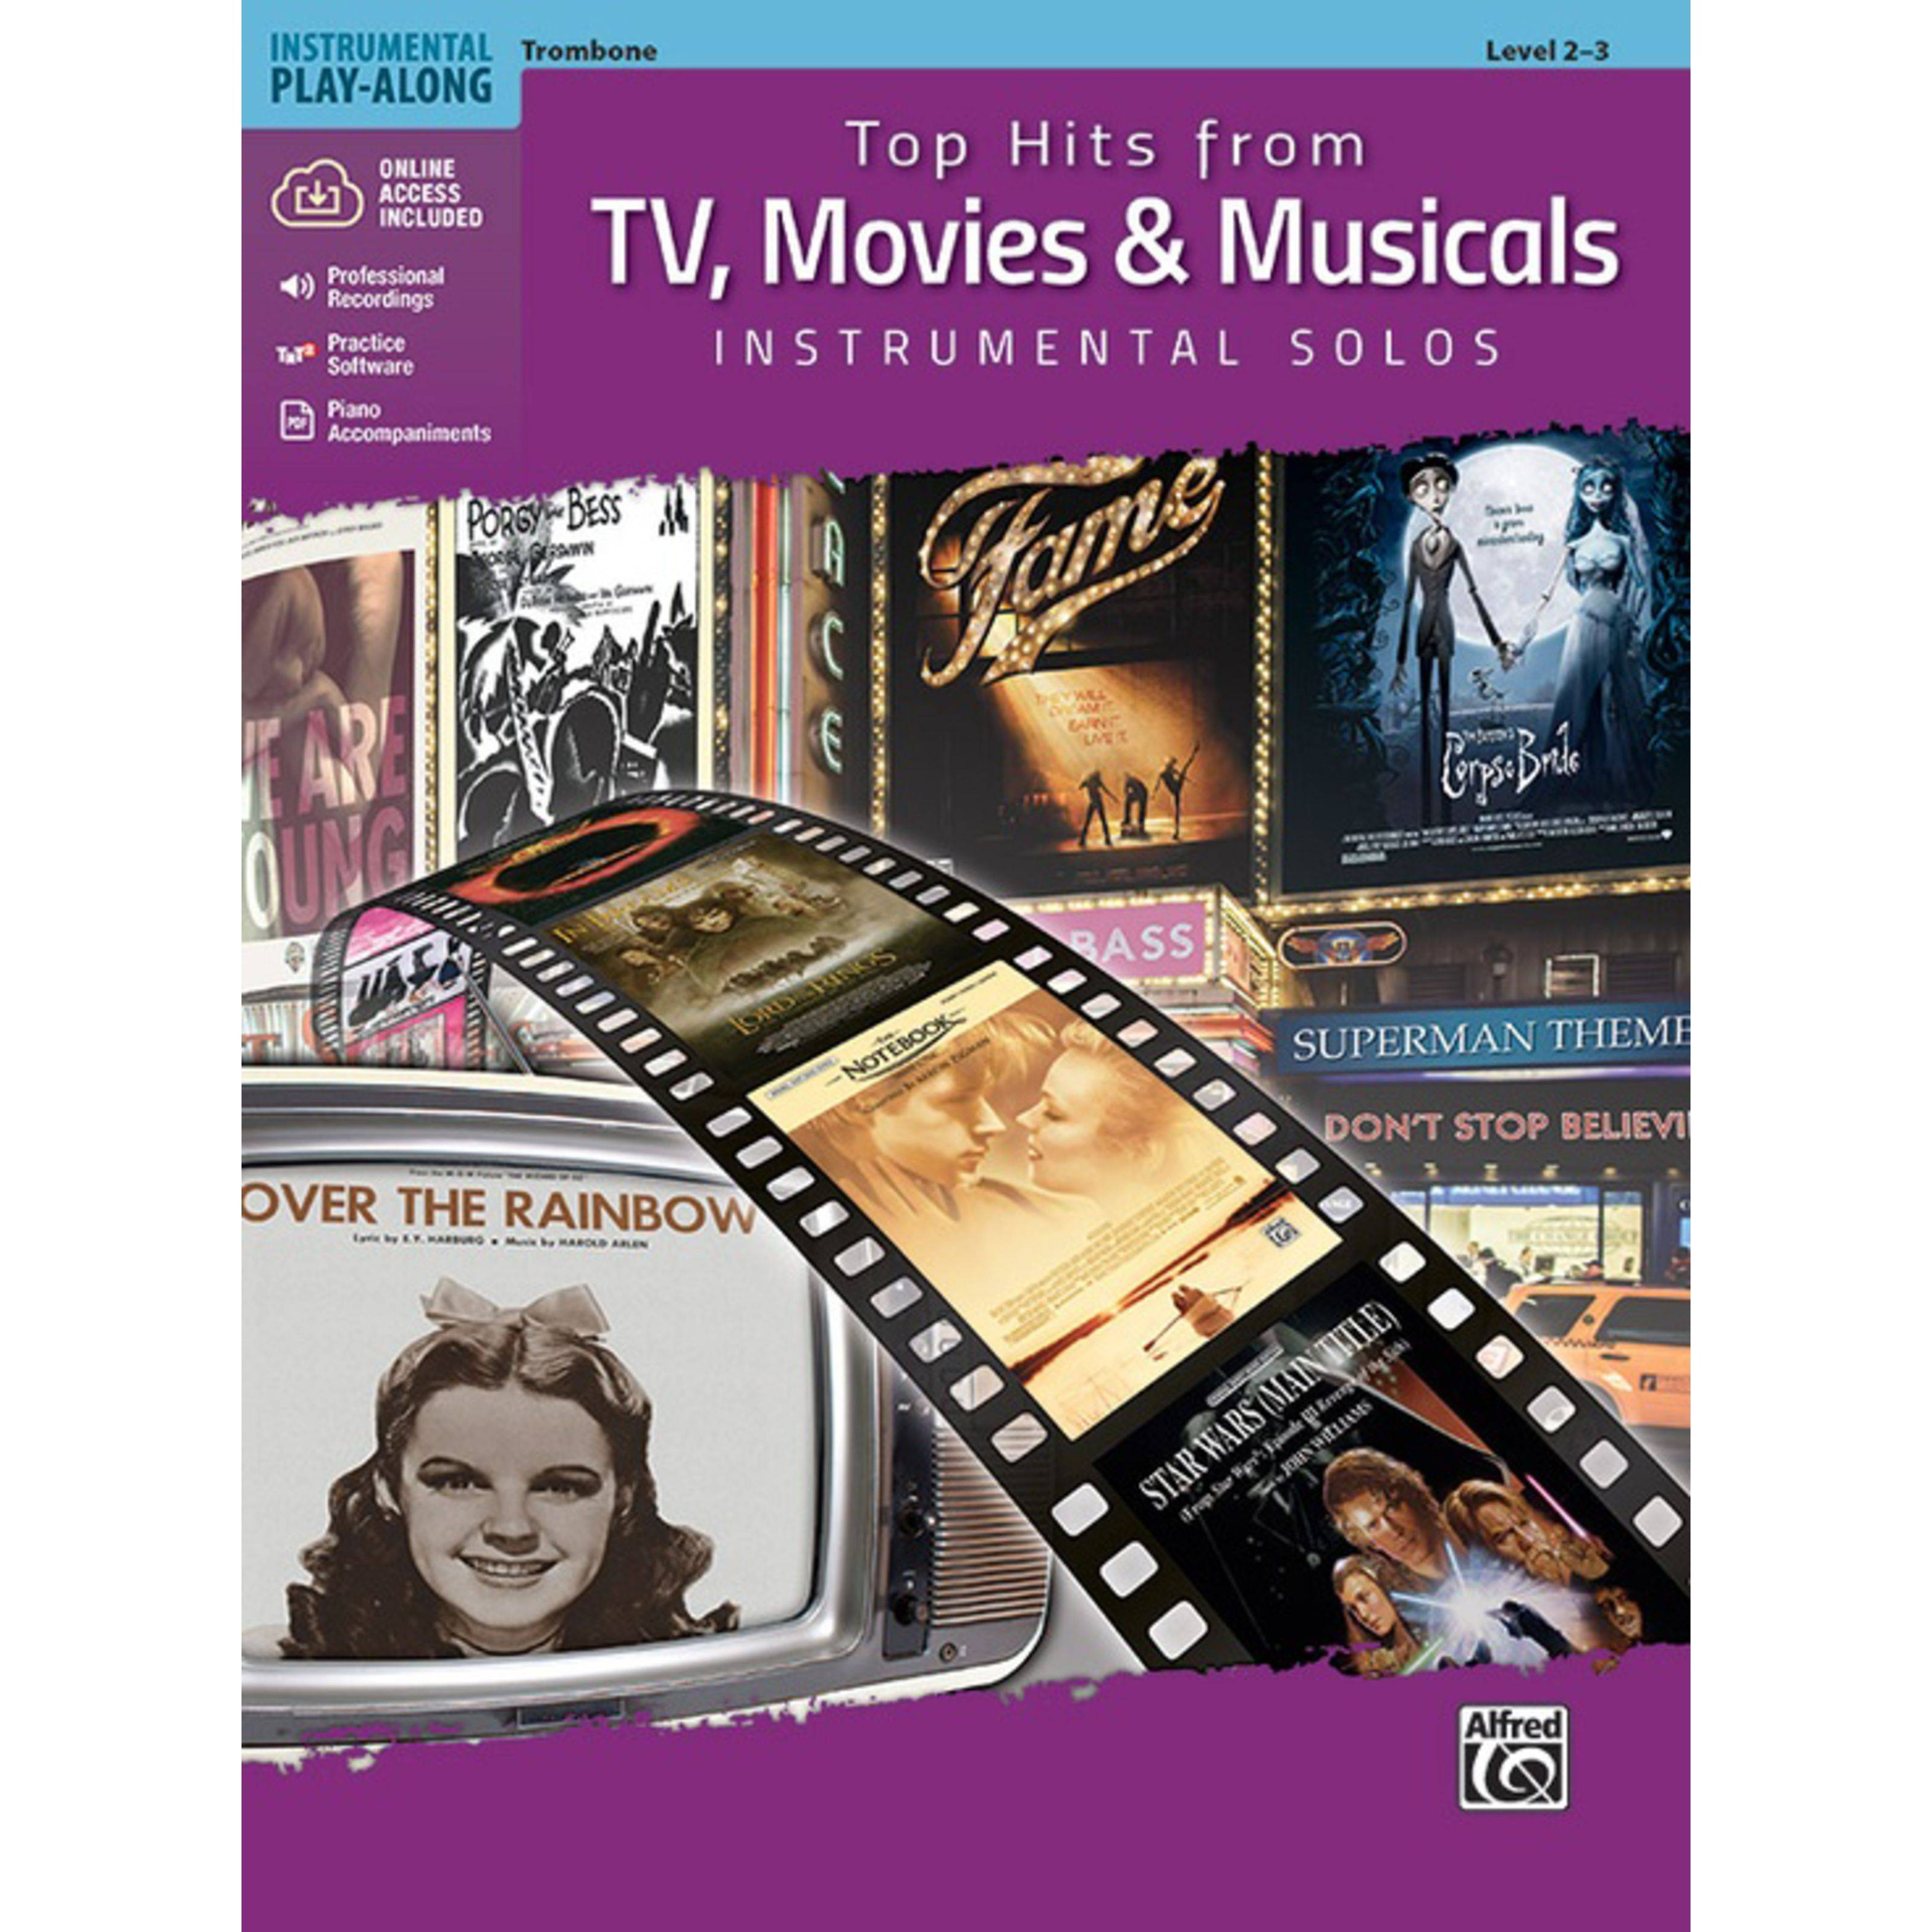 Alfred Music Top Hits from TV, Movies & Musicals – Trombone